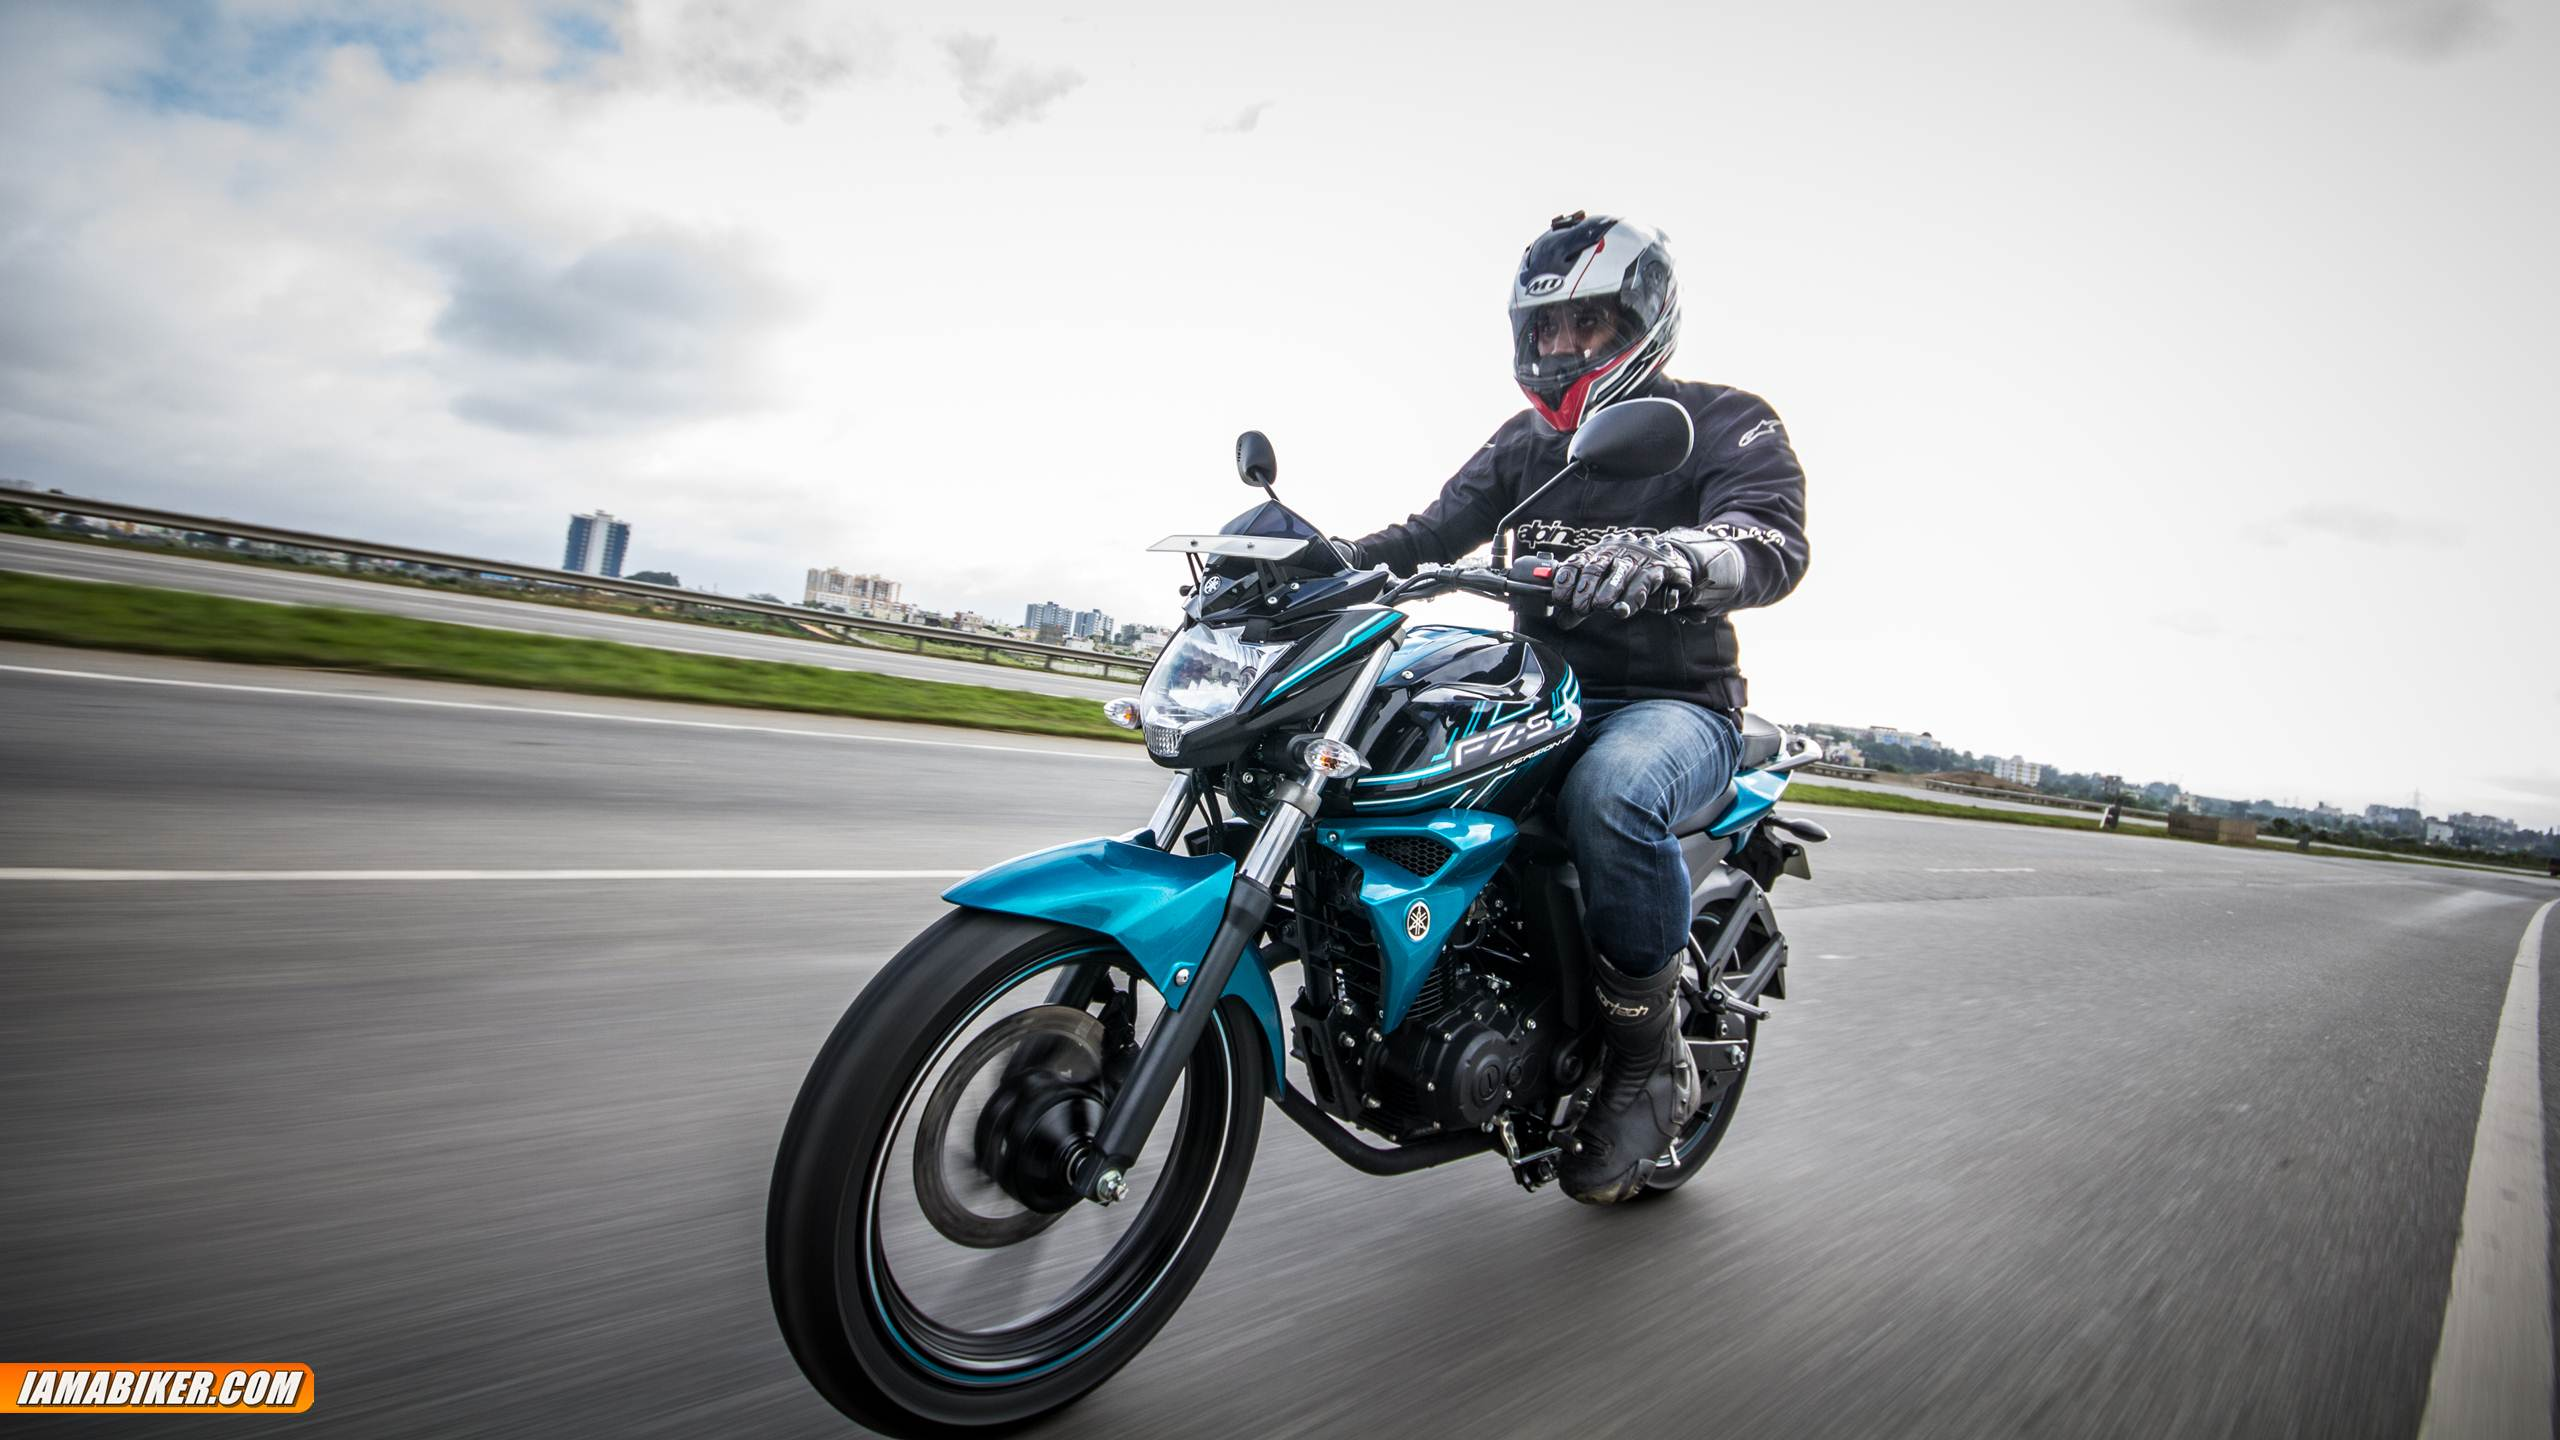 yamaha fz-s v2 review - engine and performance